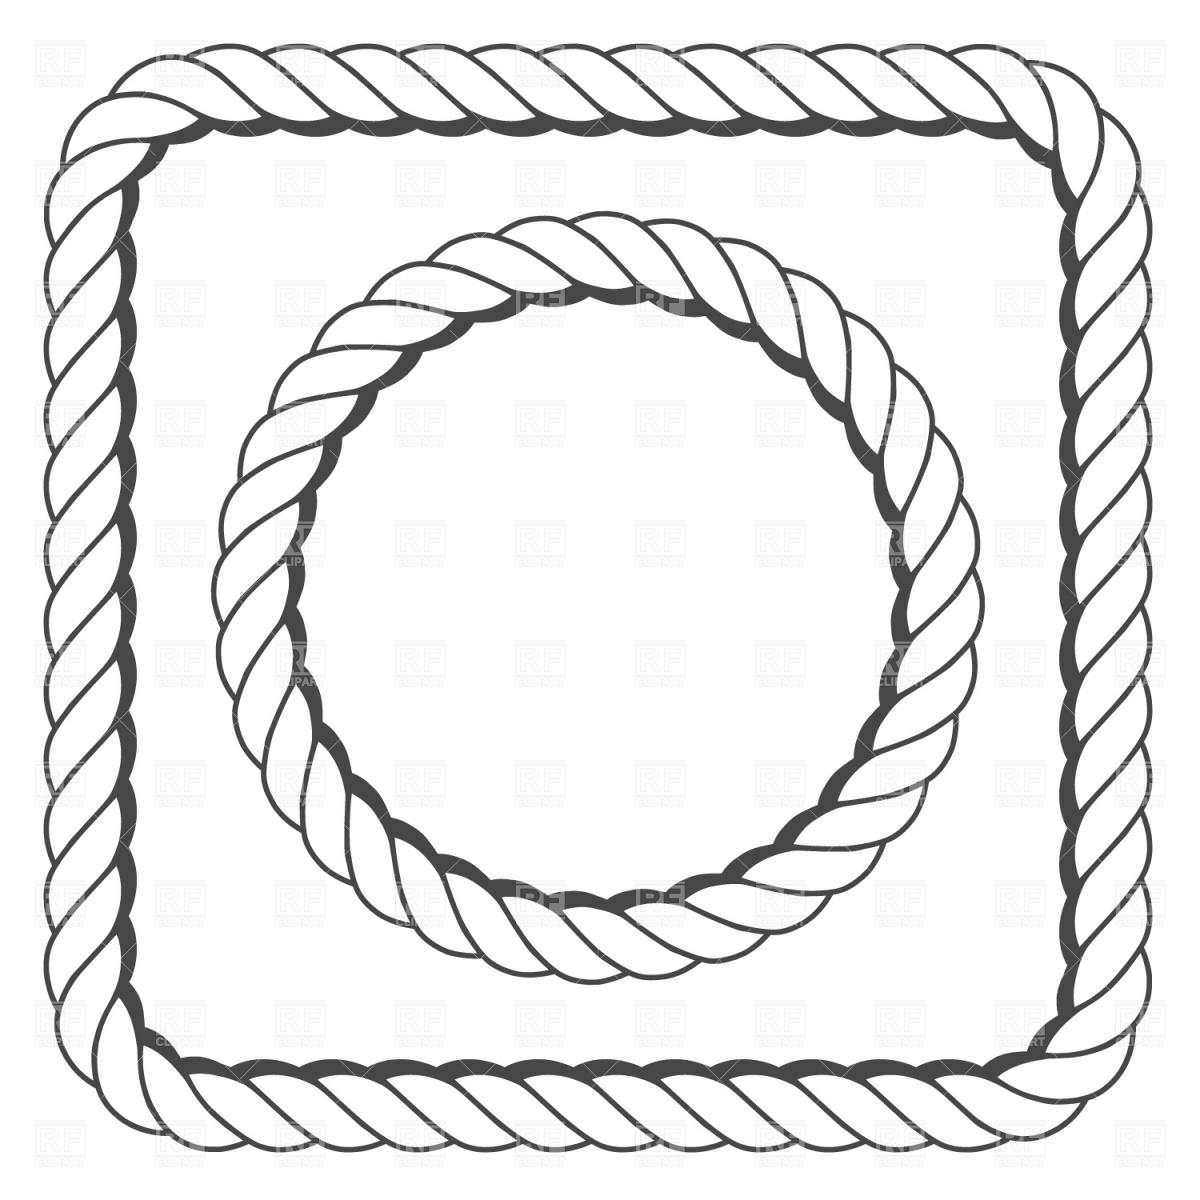 Free Free Rope Border Download Free Clip Art Free Clip